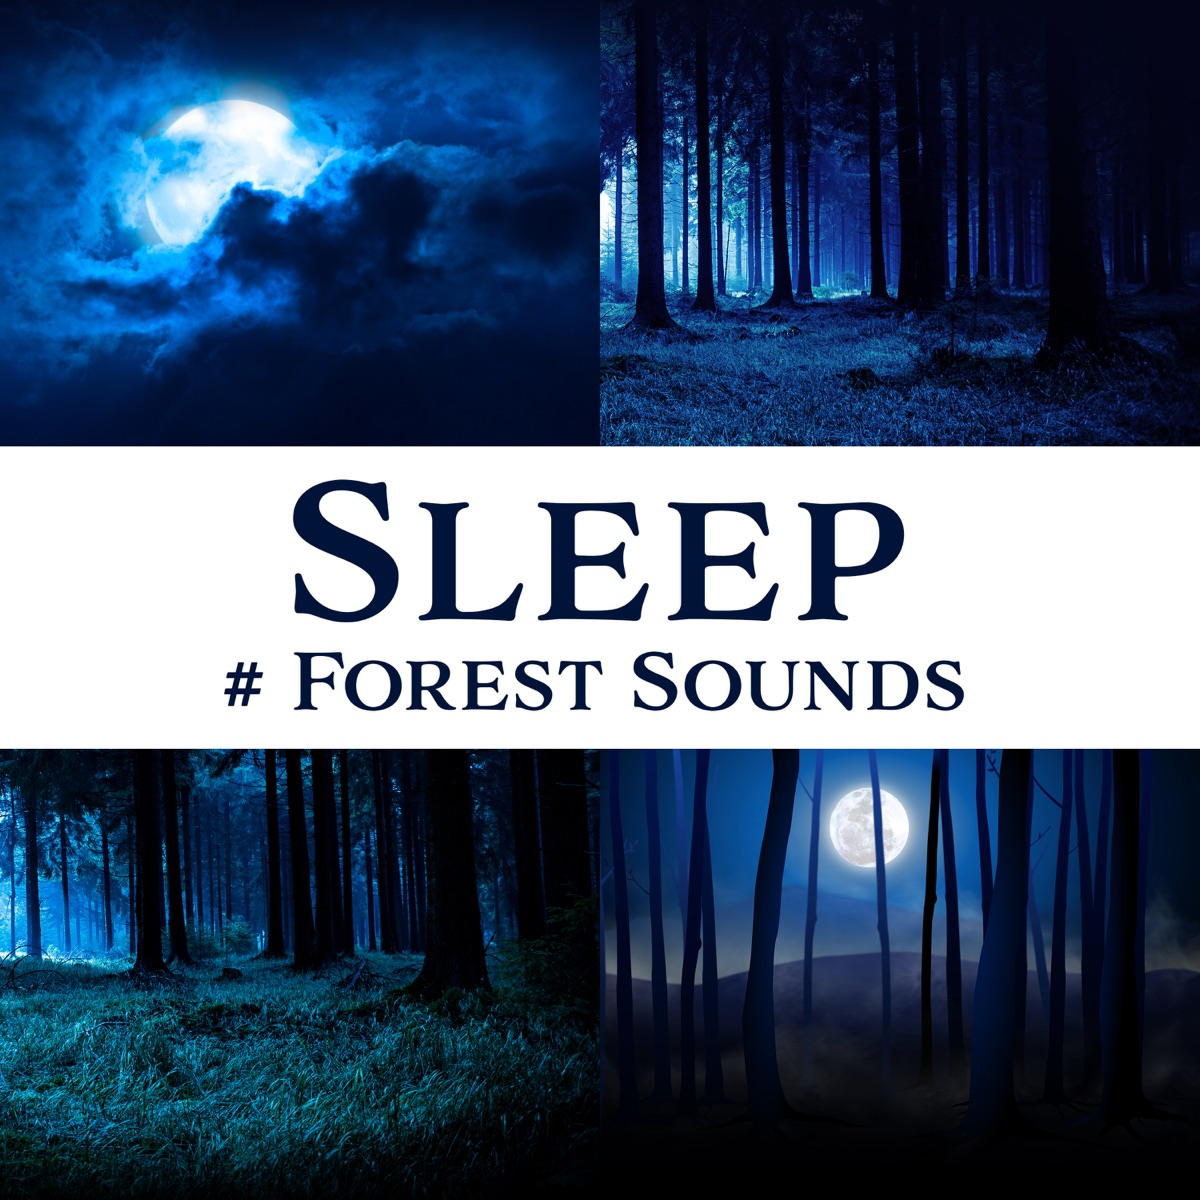 Sleep: # Forest Sounds Album Cover by Relaxing Nature Sounds